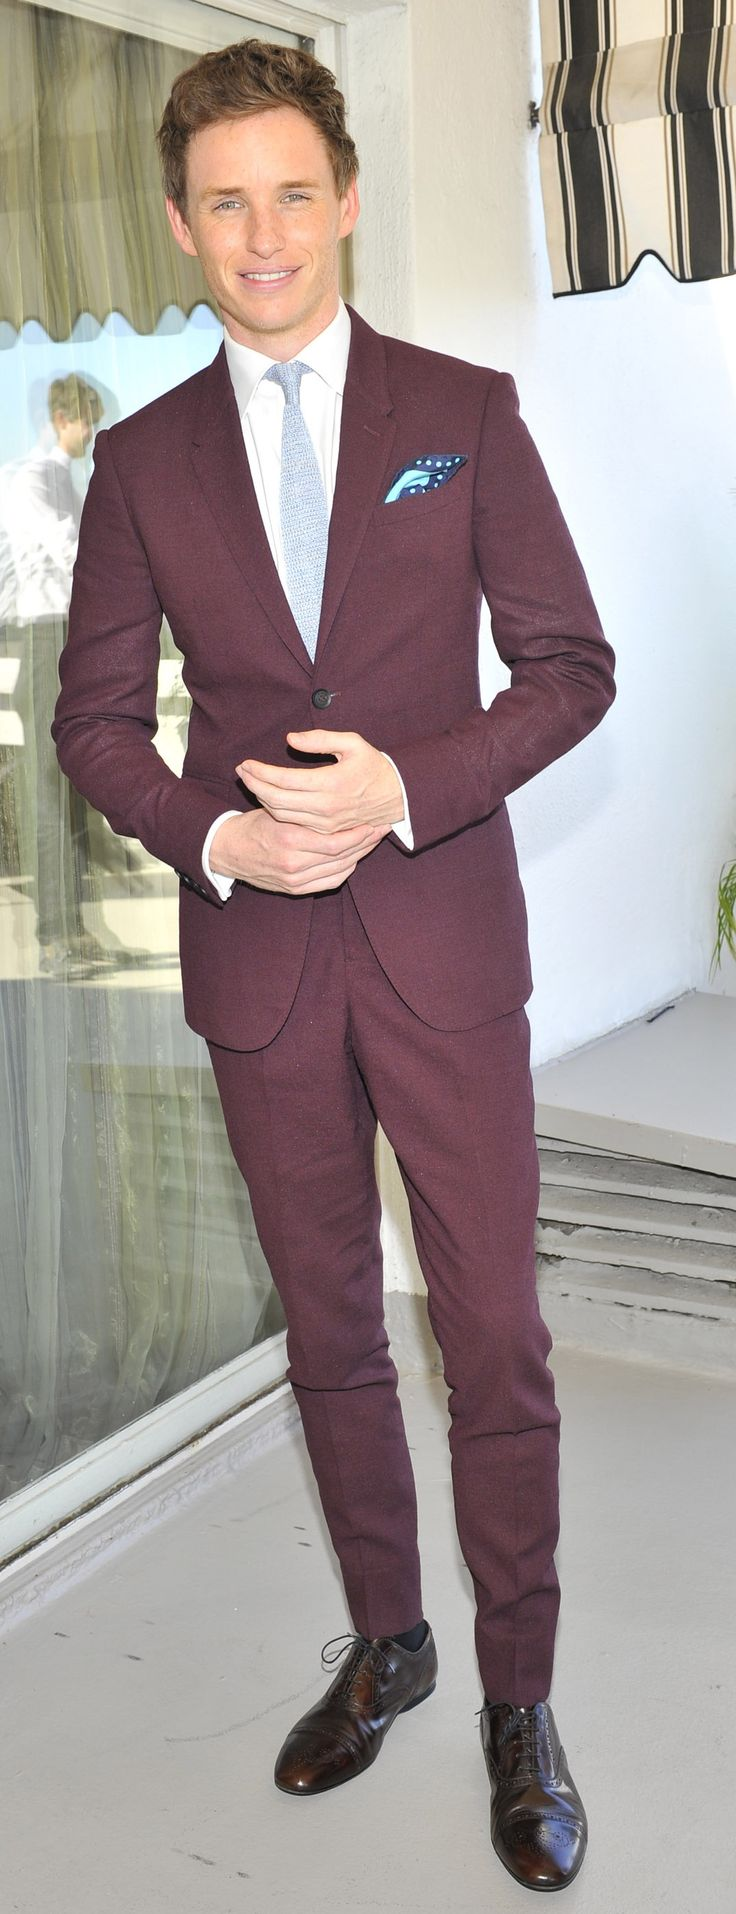 Suit Porn Provided By GQ's Best Dressed Man Eddie Redmayne